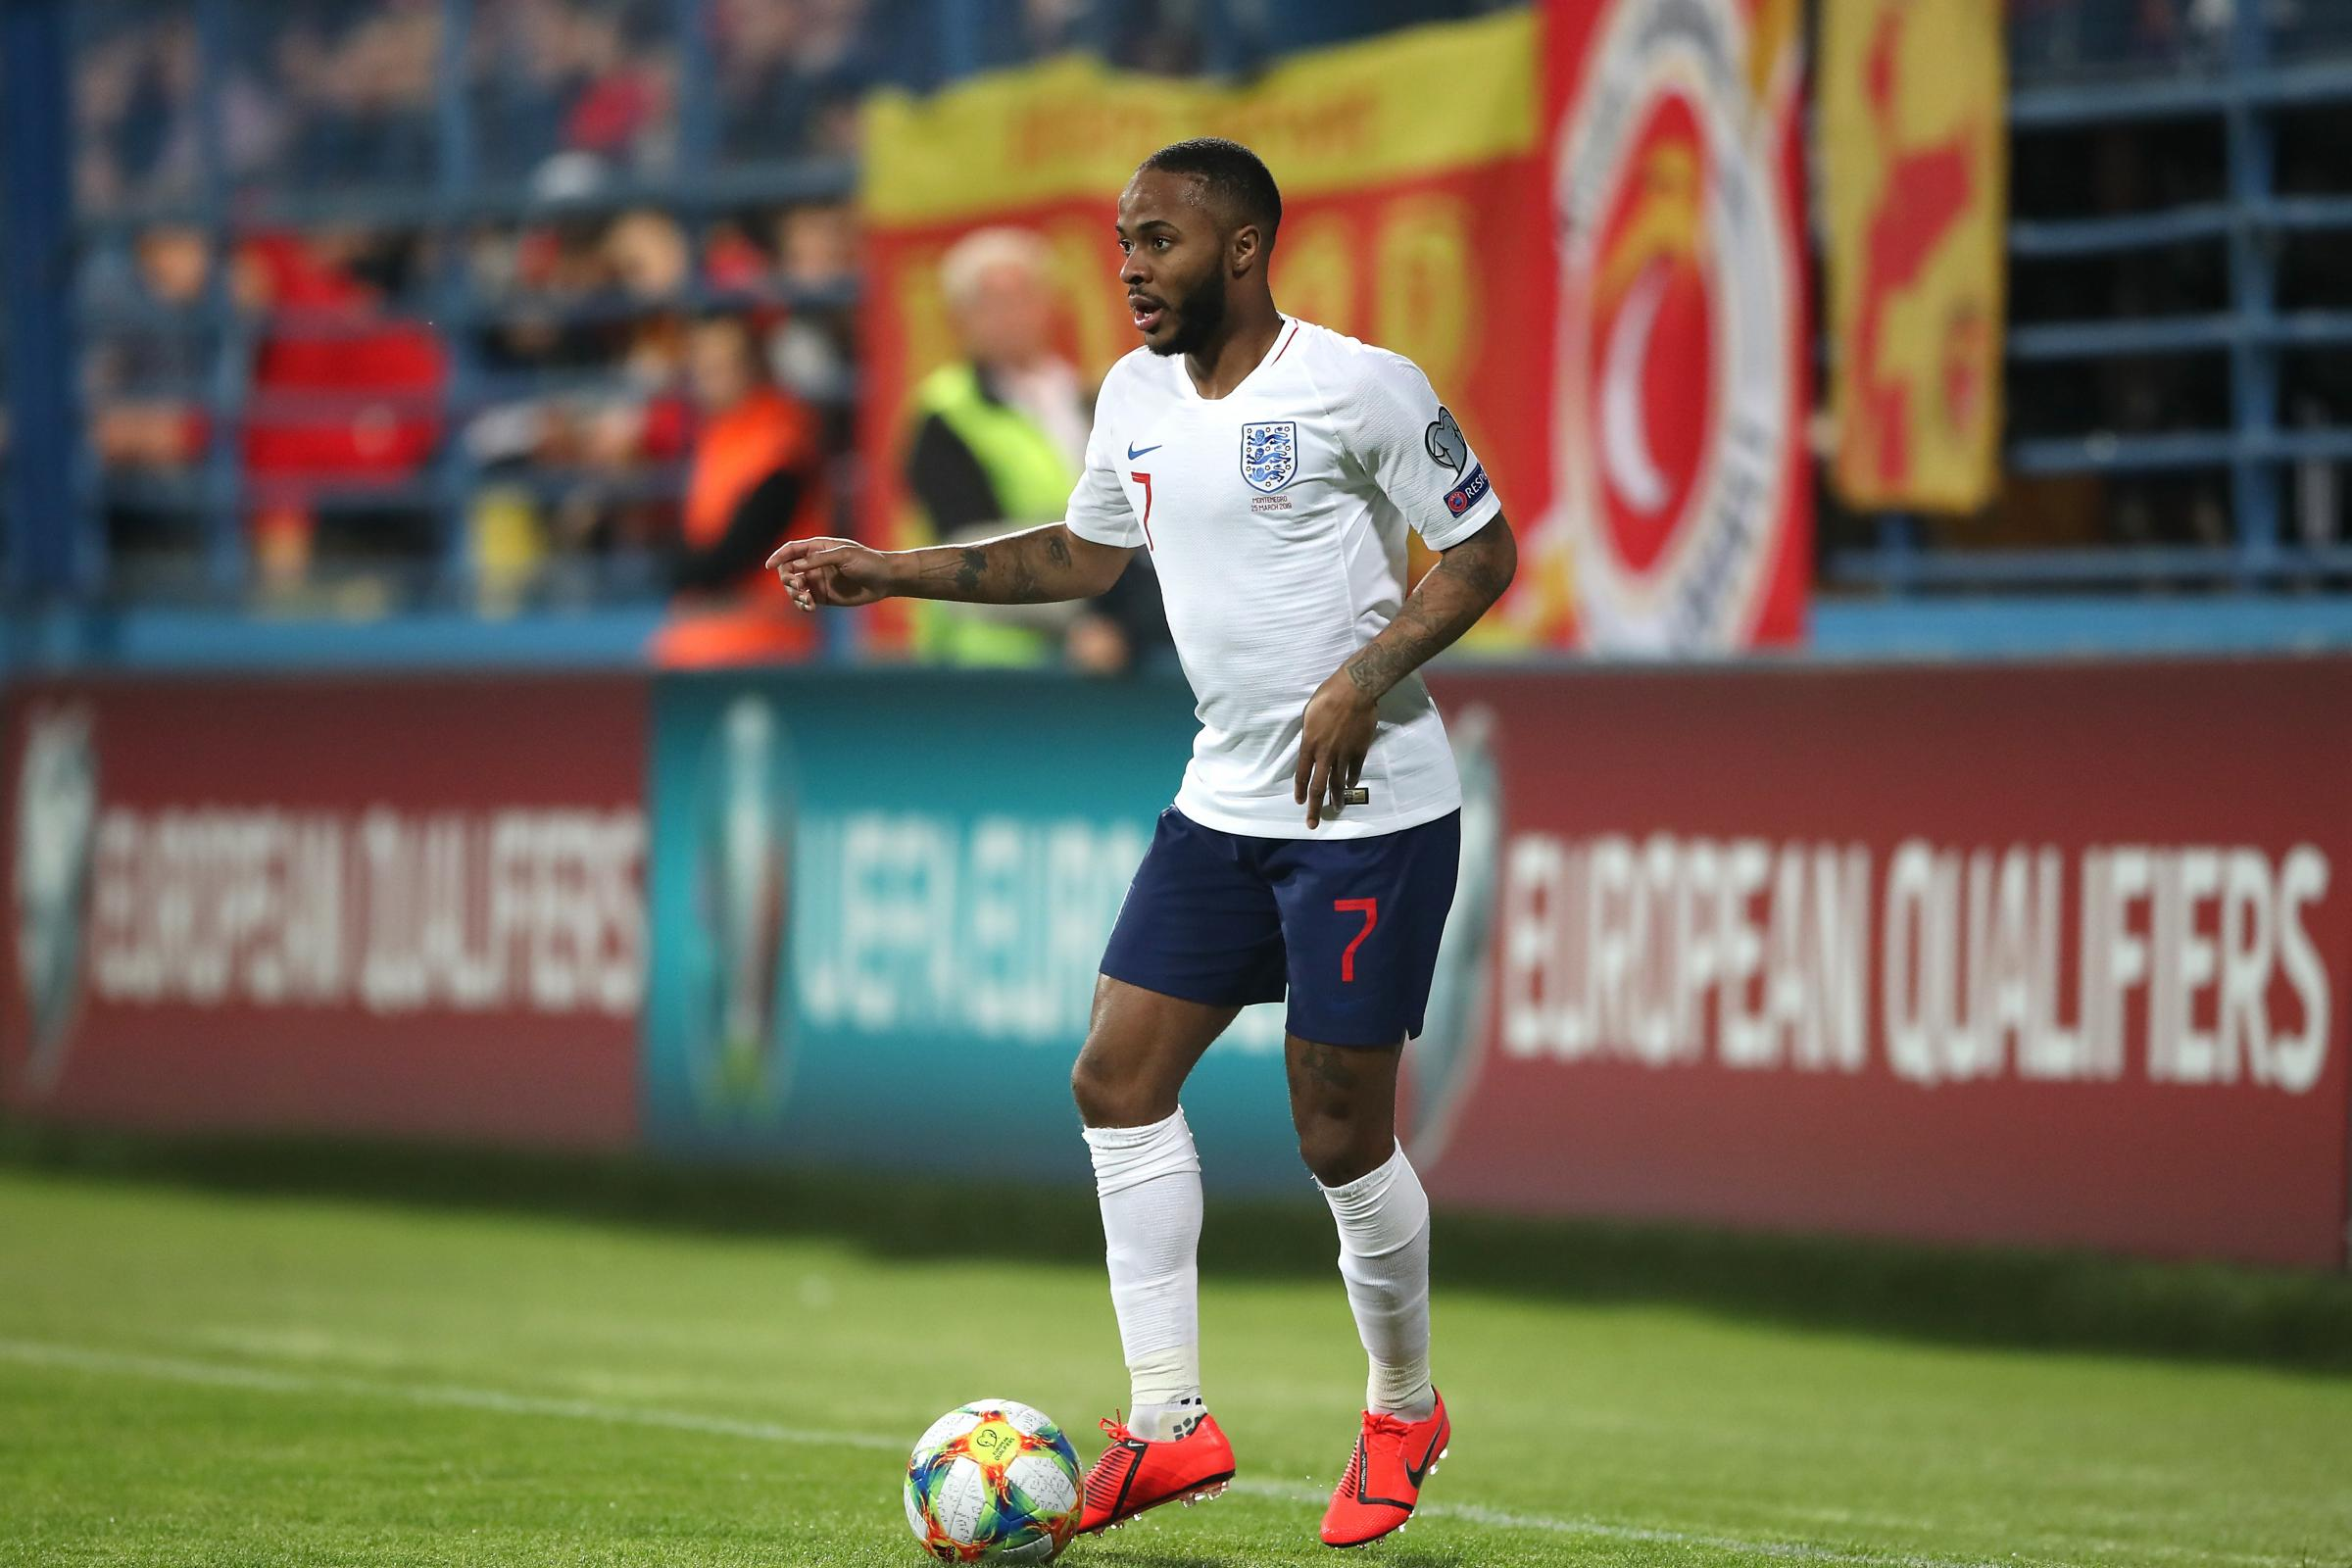 Raheem Sterling was subjected to racist abuse